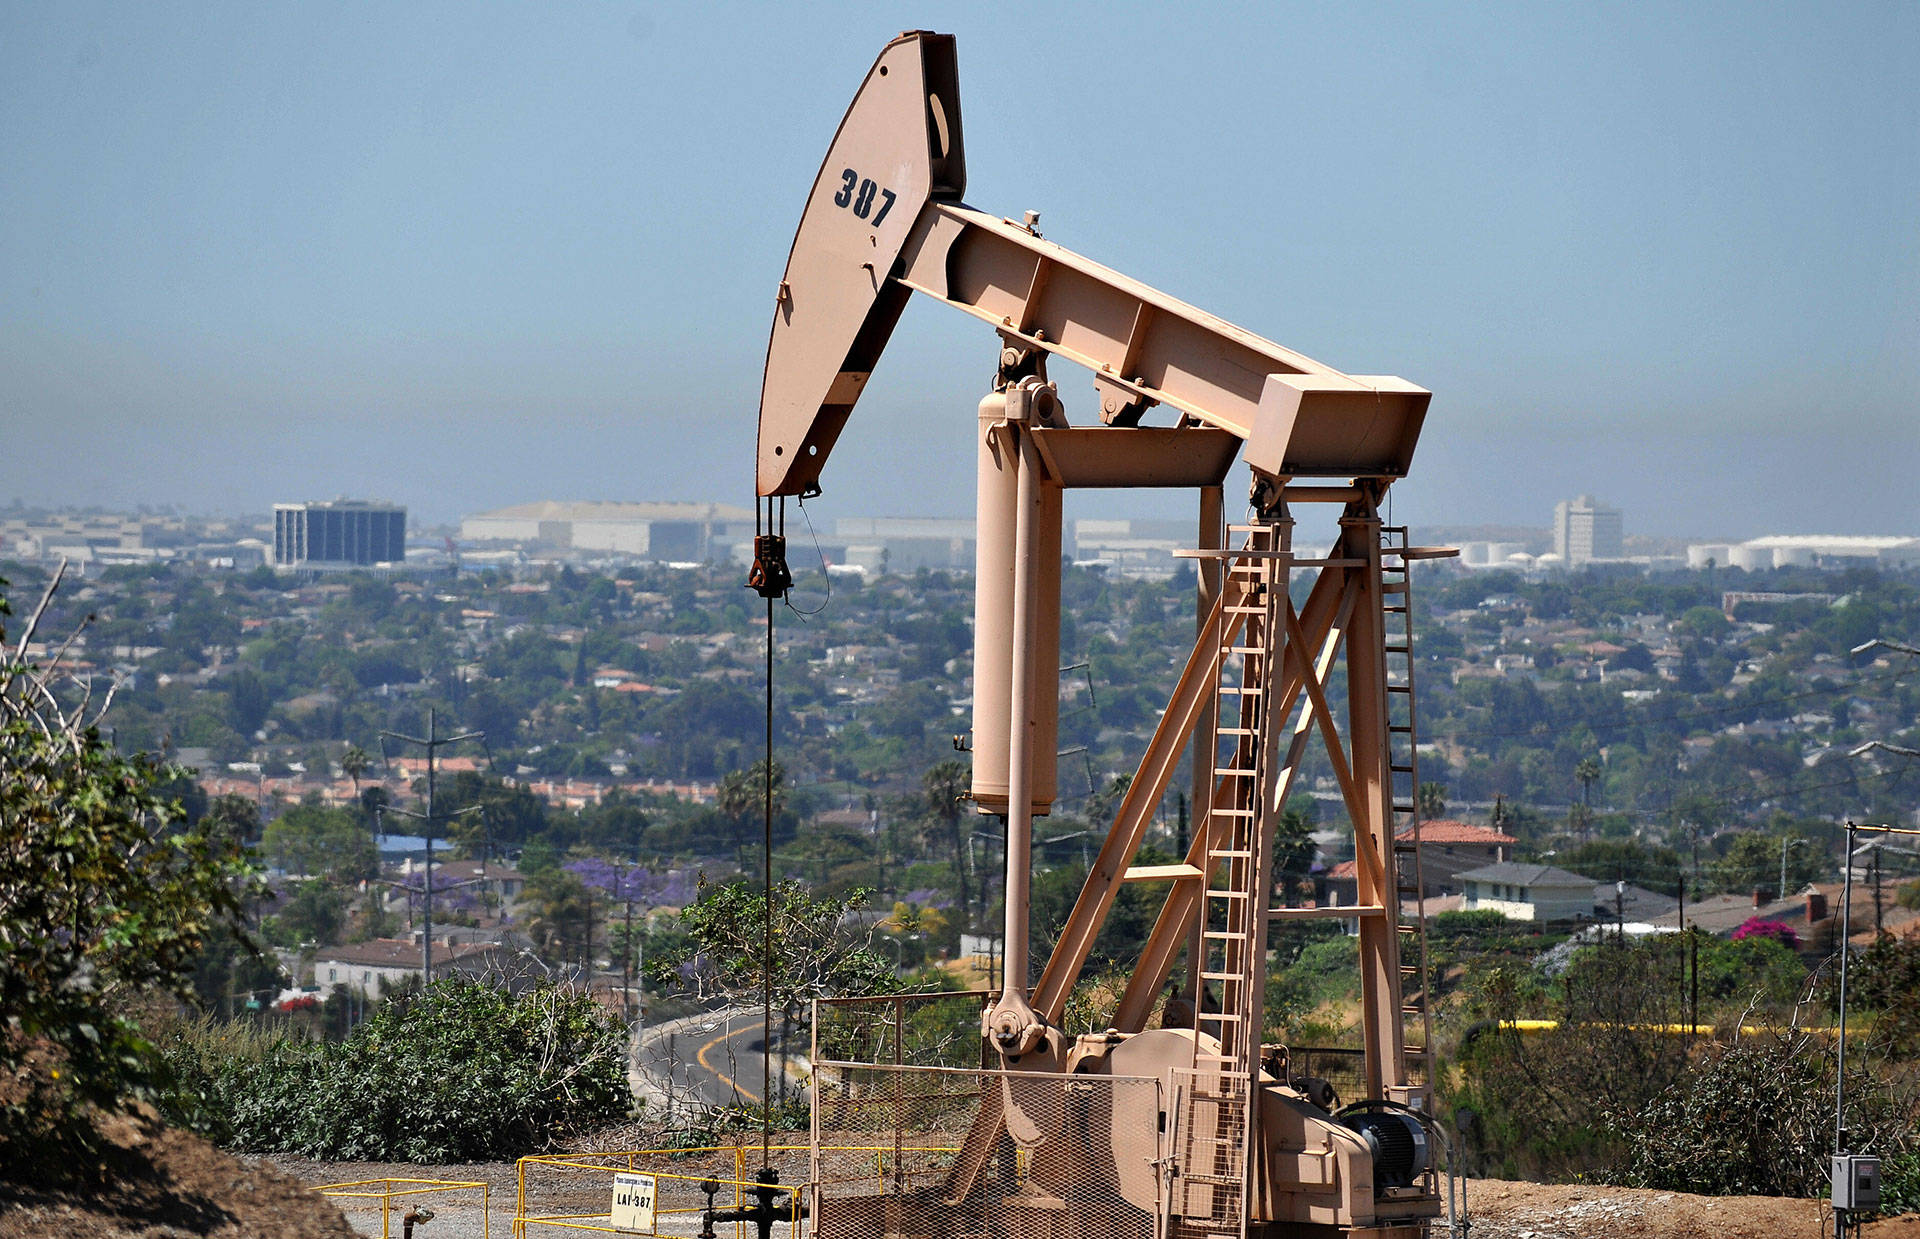 An oil rig operates in Culver City. GABRIEL BOUYS/AFP/Getty Images